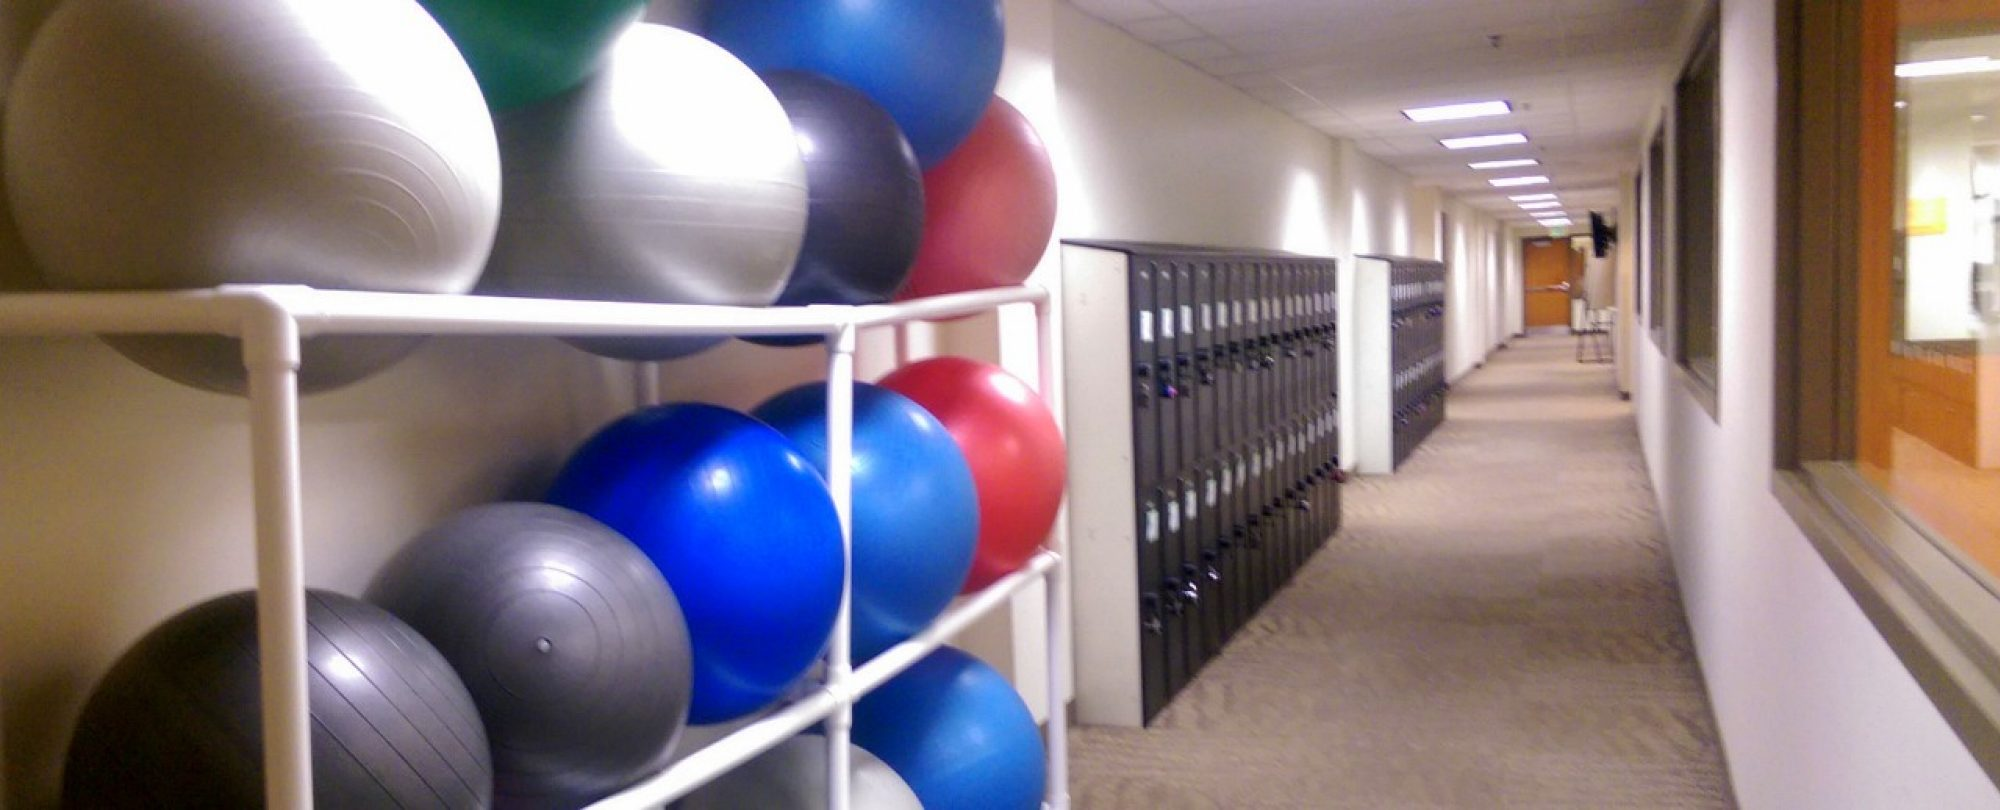 photo of yoga balls stacked in hallway